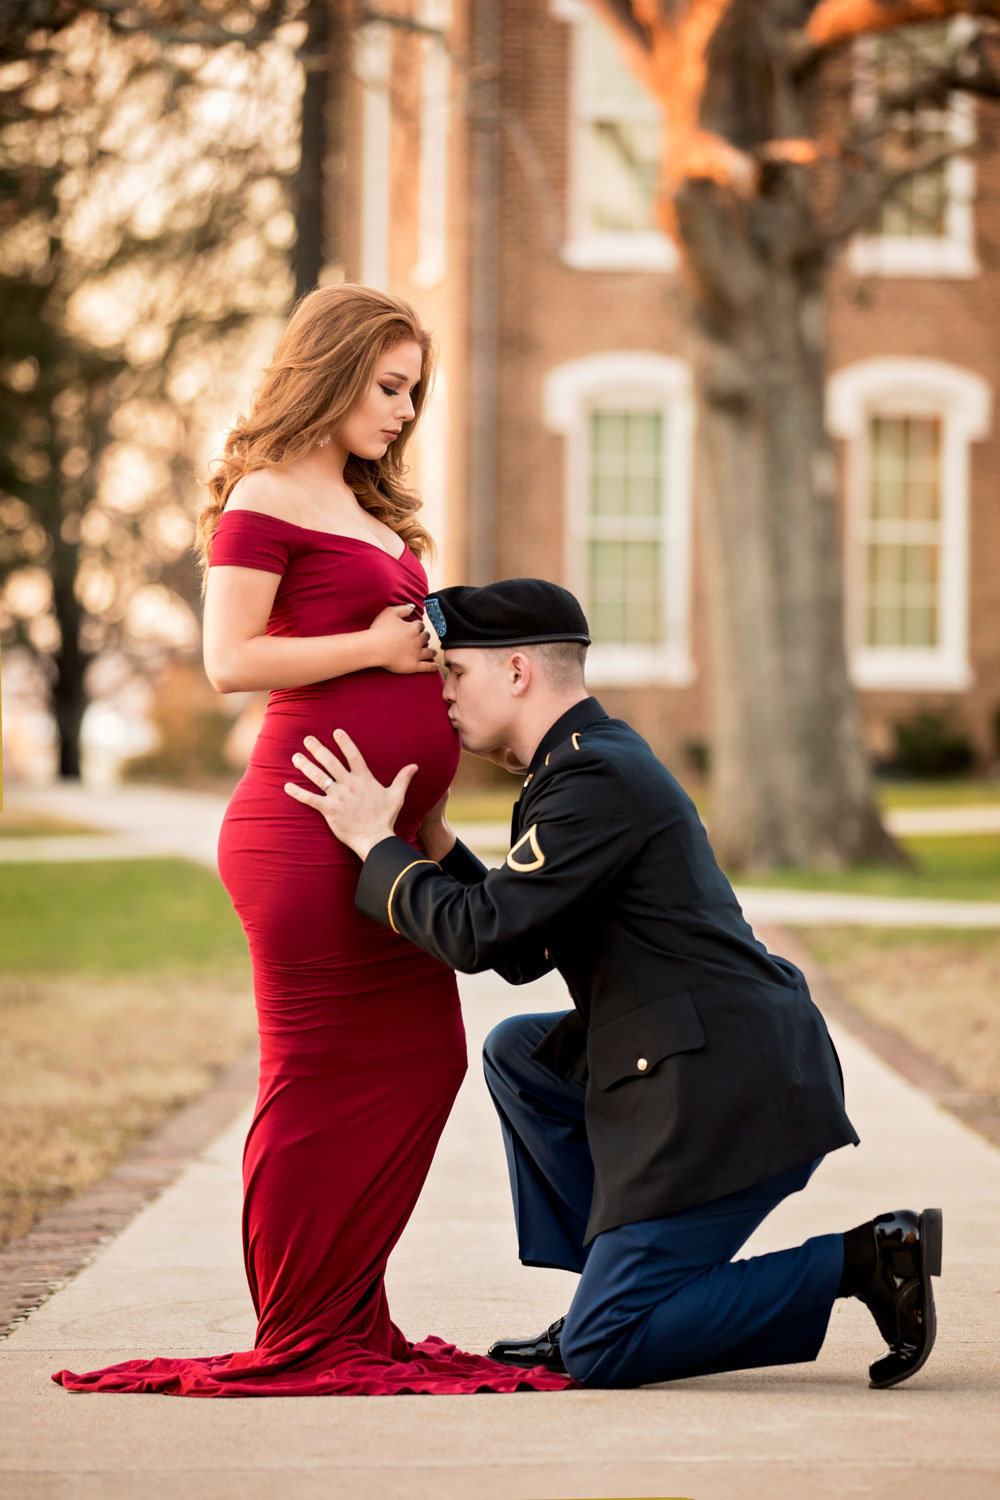 Maryville-photographer-maternity-belly-kiss-soldier.jpg